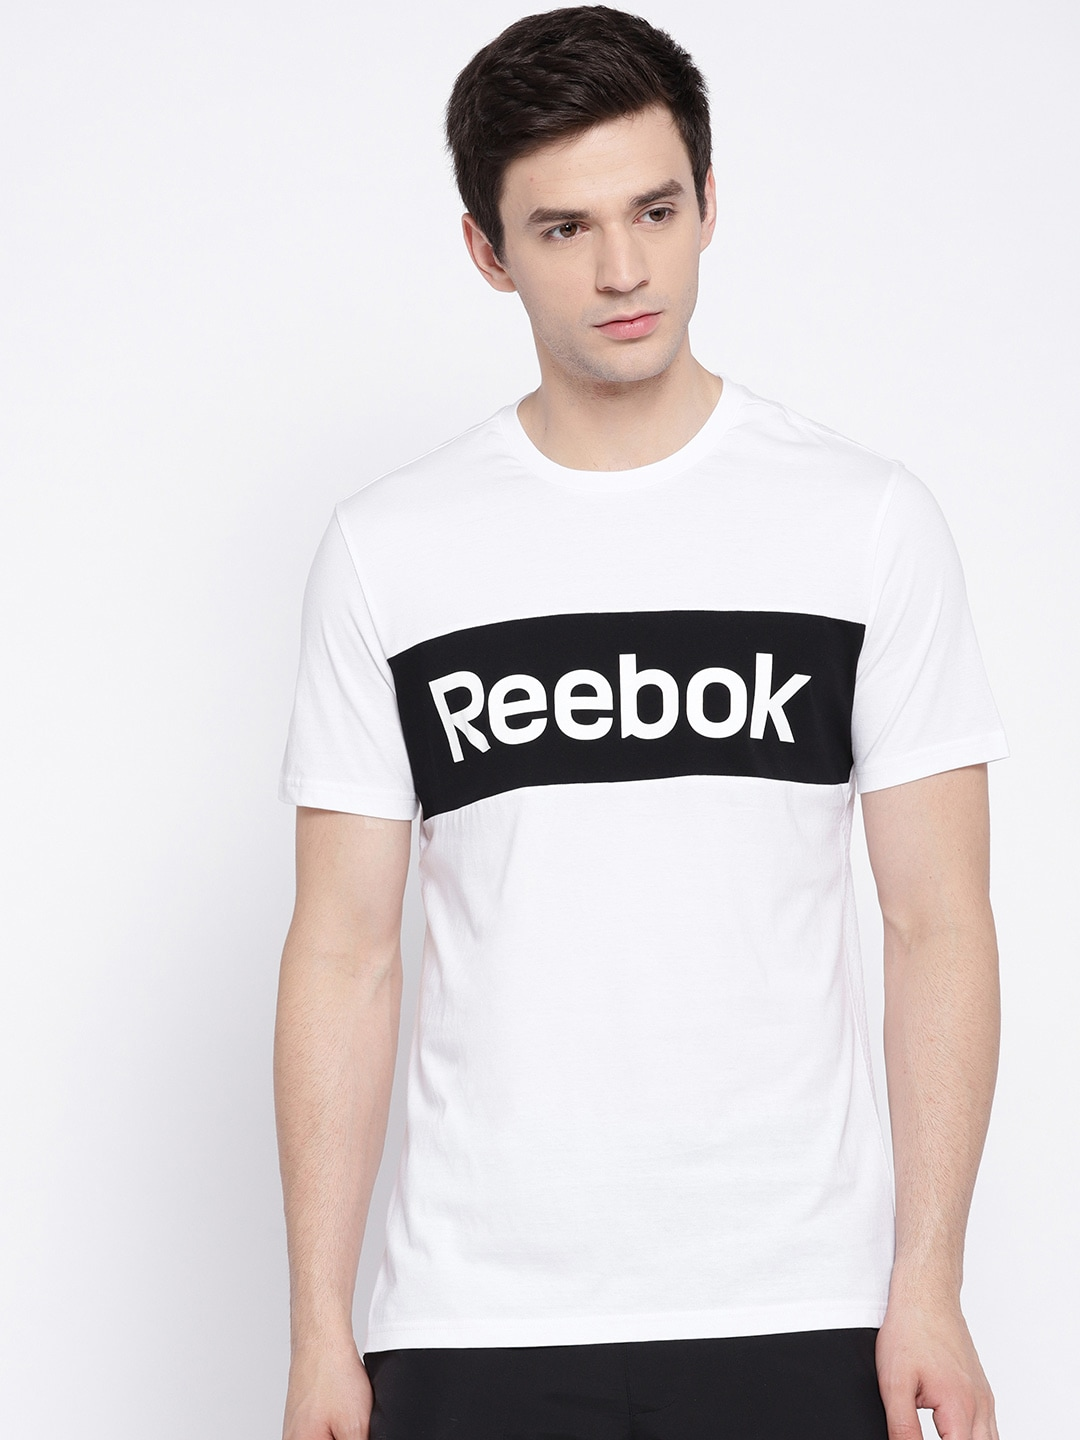 644a91d71b Reebok Men White CS Brand Graph Printed Round Neck T-shirt